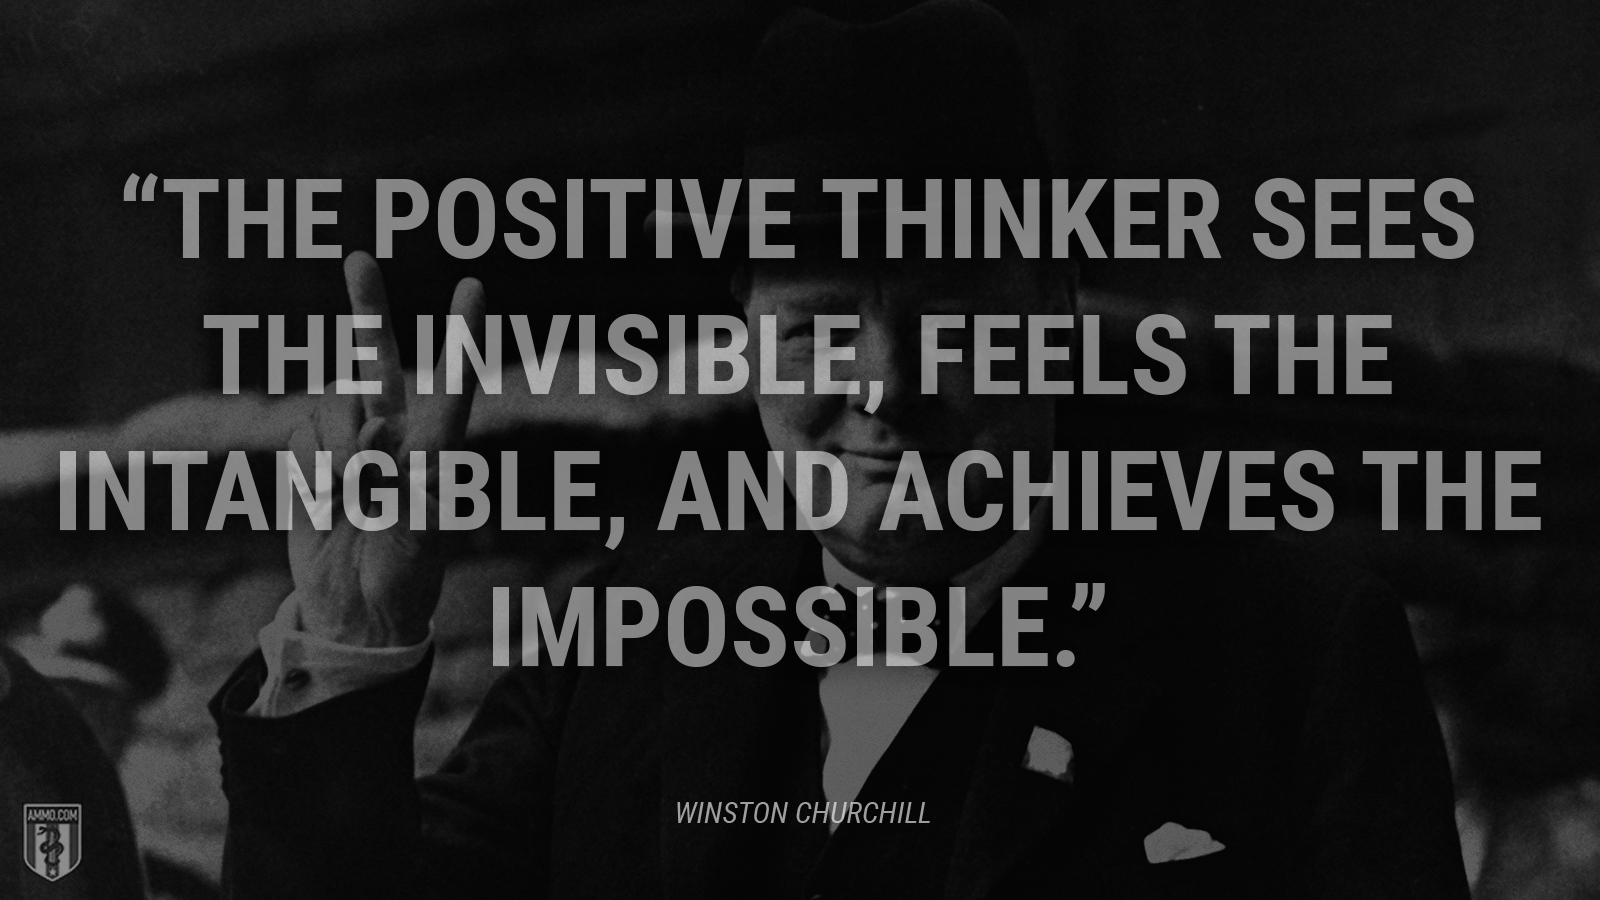 """The positive thinker sees the invisible, feels the intangible, and achieves the impossible."" - Winston Churchill"